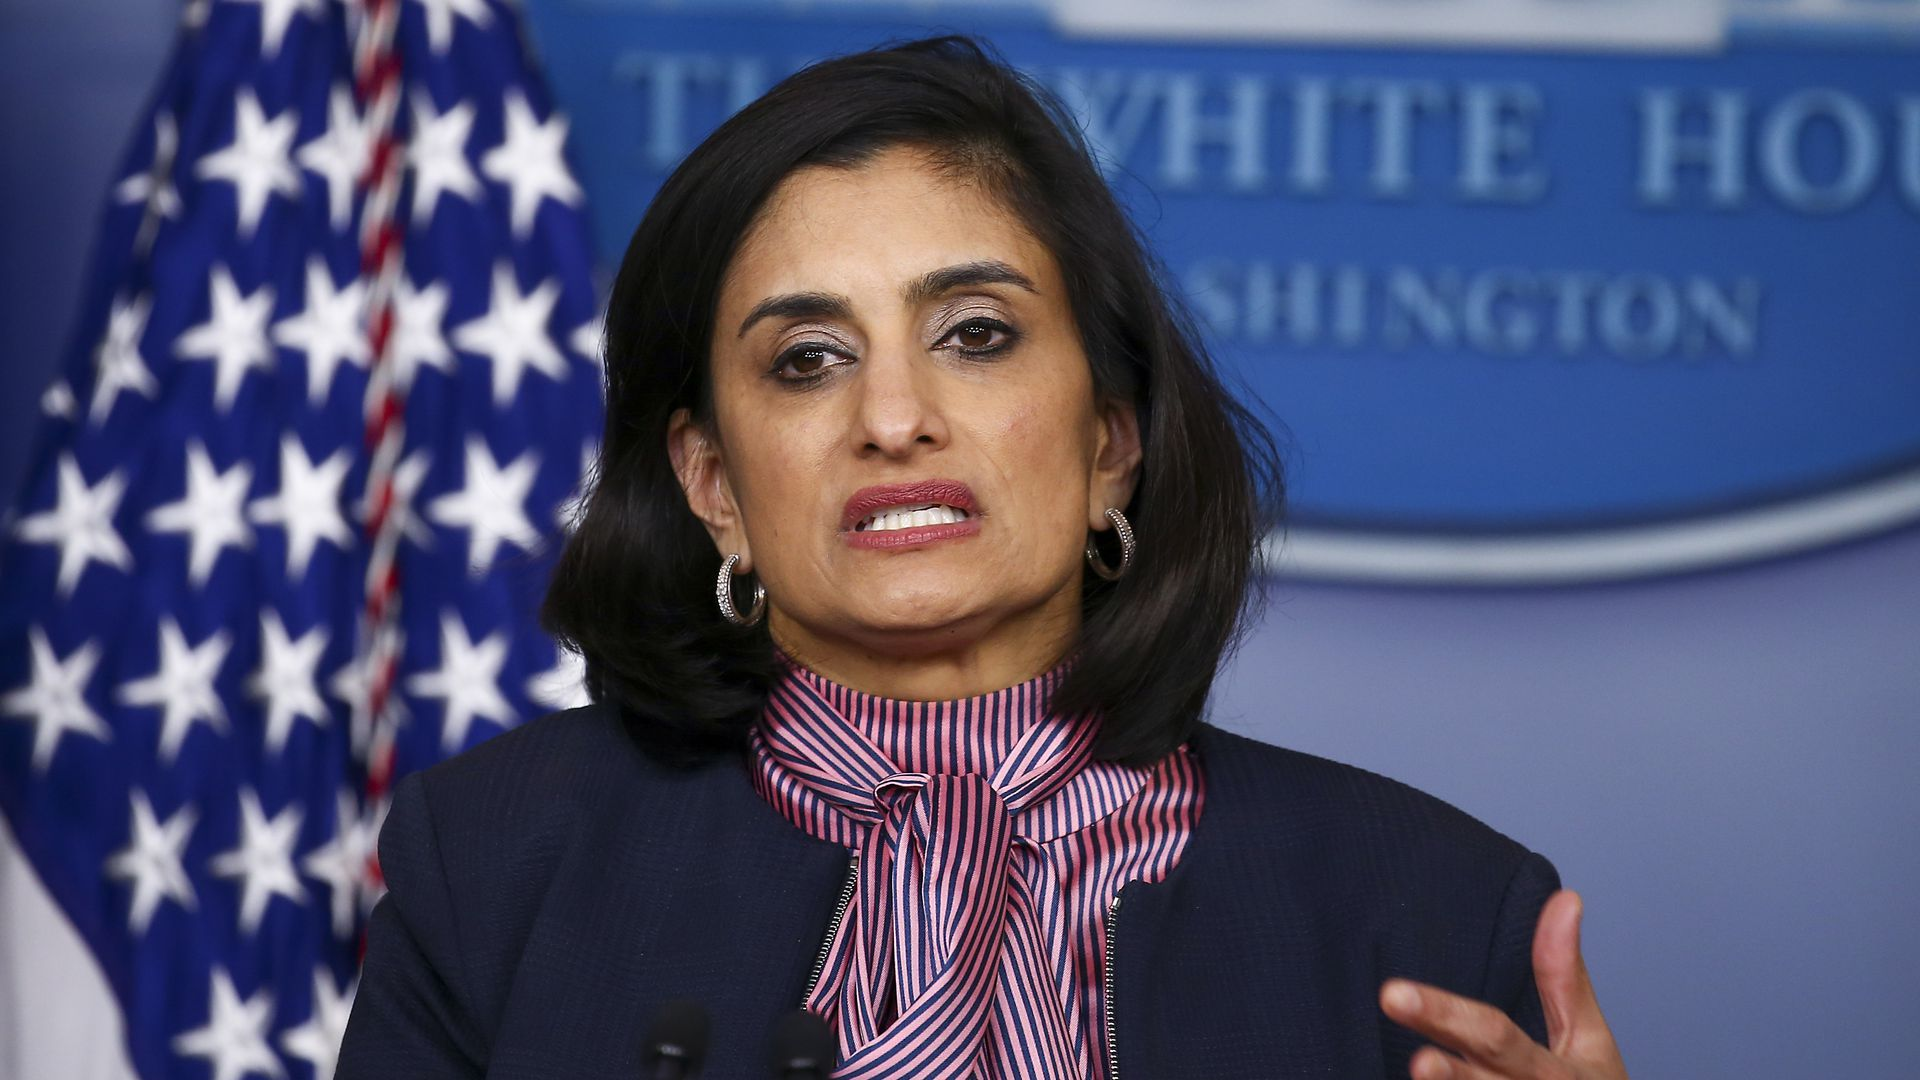 Seema Verma, administrator of the Centers for Medicare and Medicaid Services, speaks at the daily coronavirus briefing at the White House on April 19